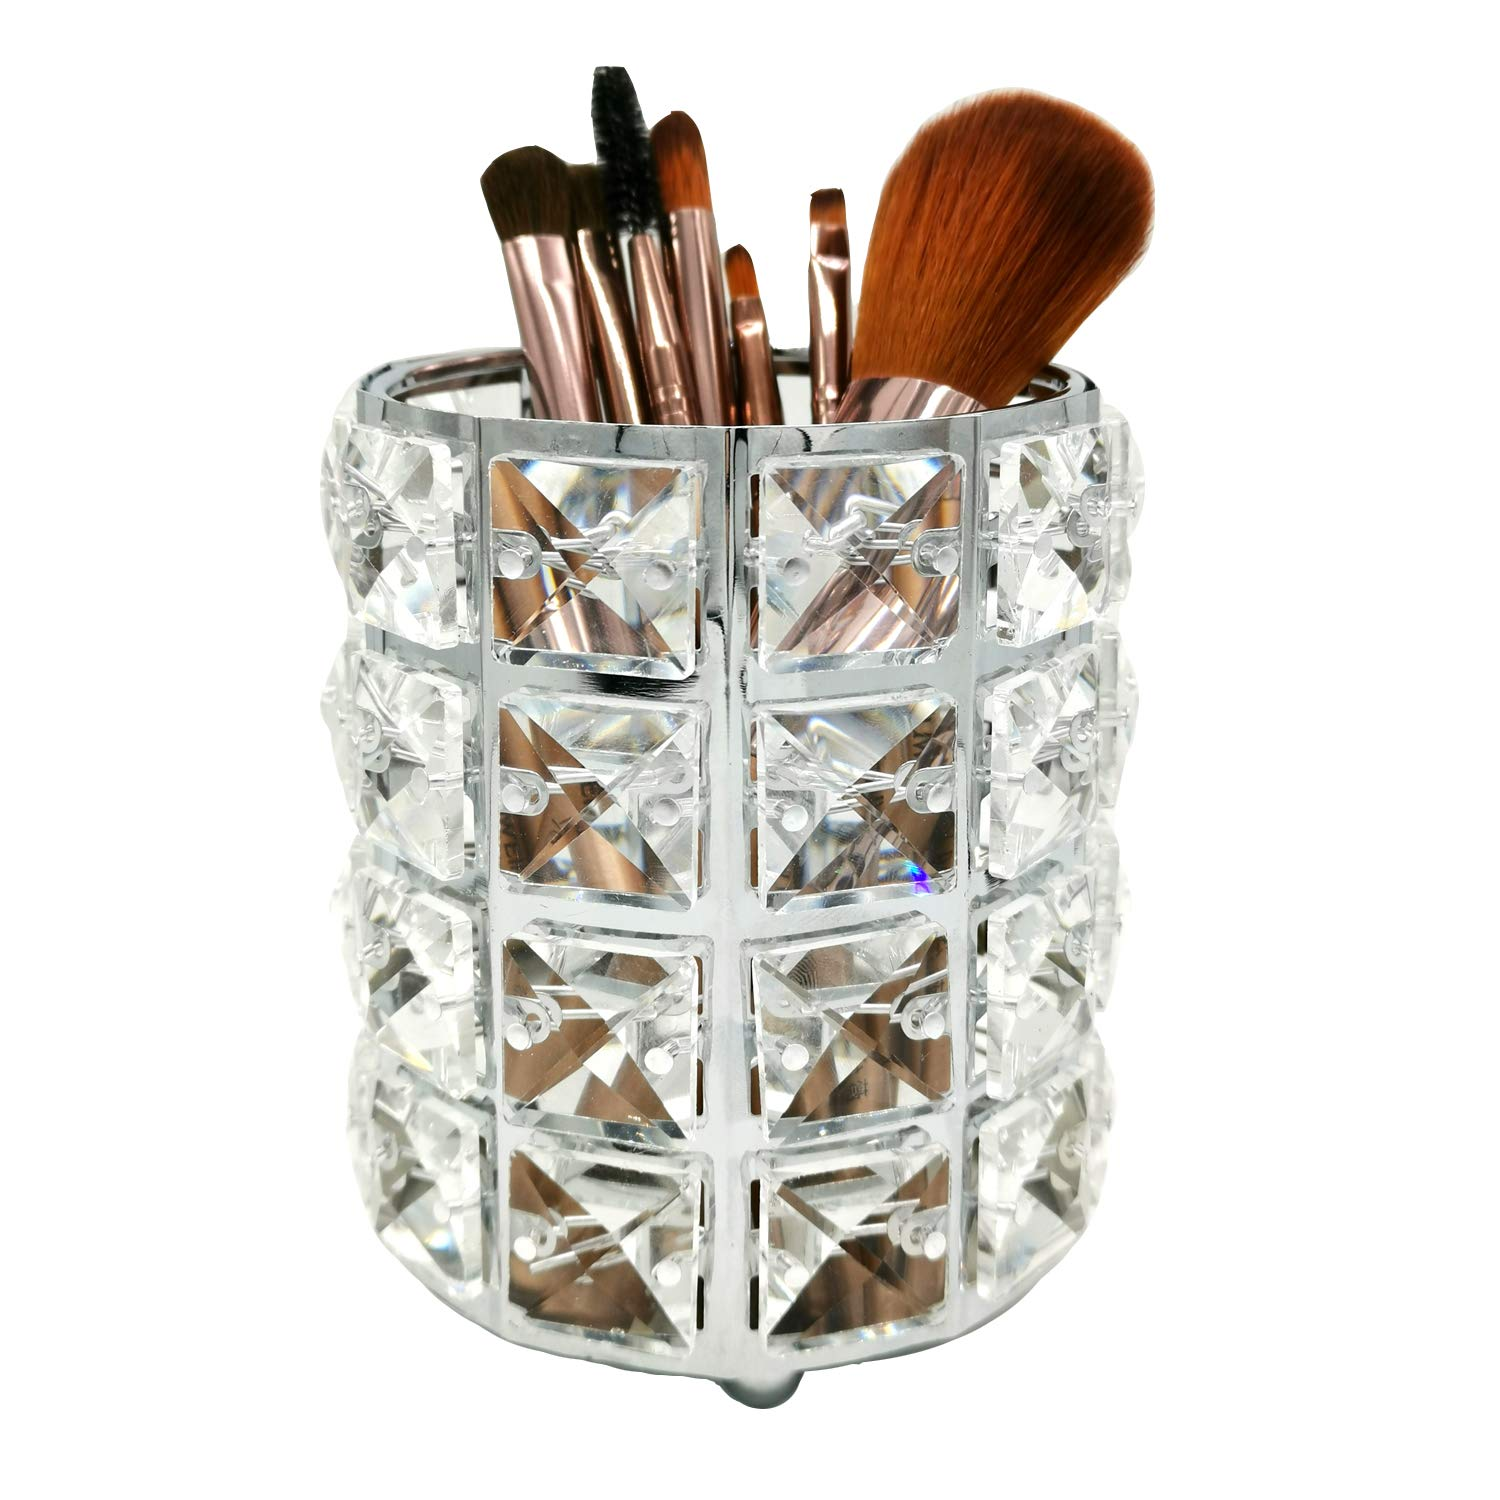 WILTEEXS Makeup Brush Holder Crystal Makeup Organizer Cosmetics Container Storage for Brushes Lipsticks (Silver)